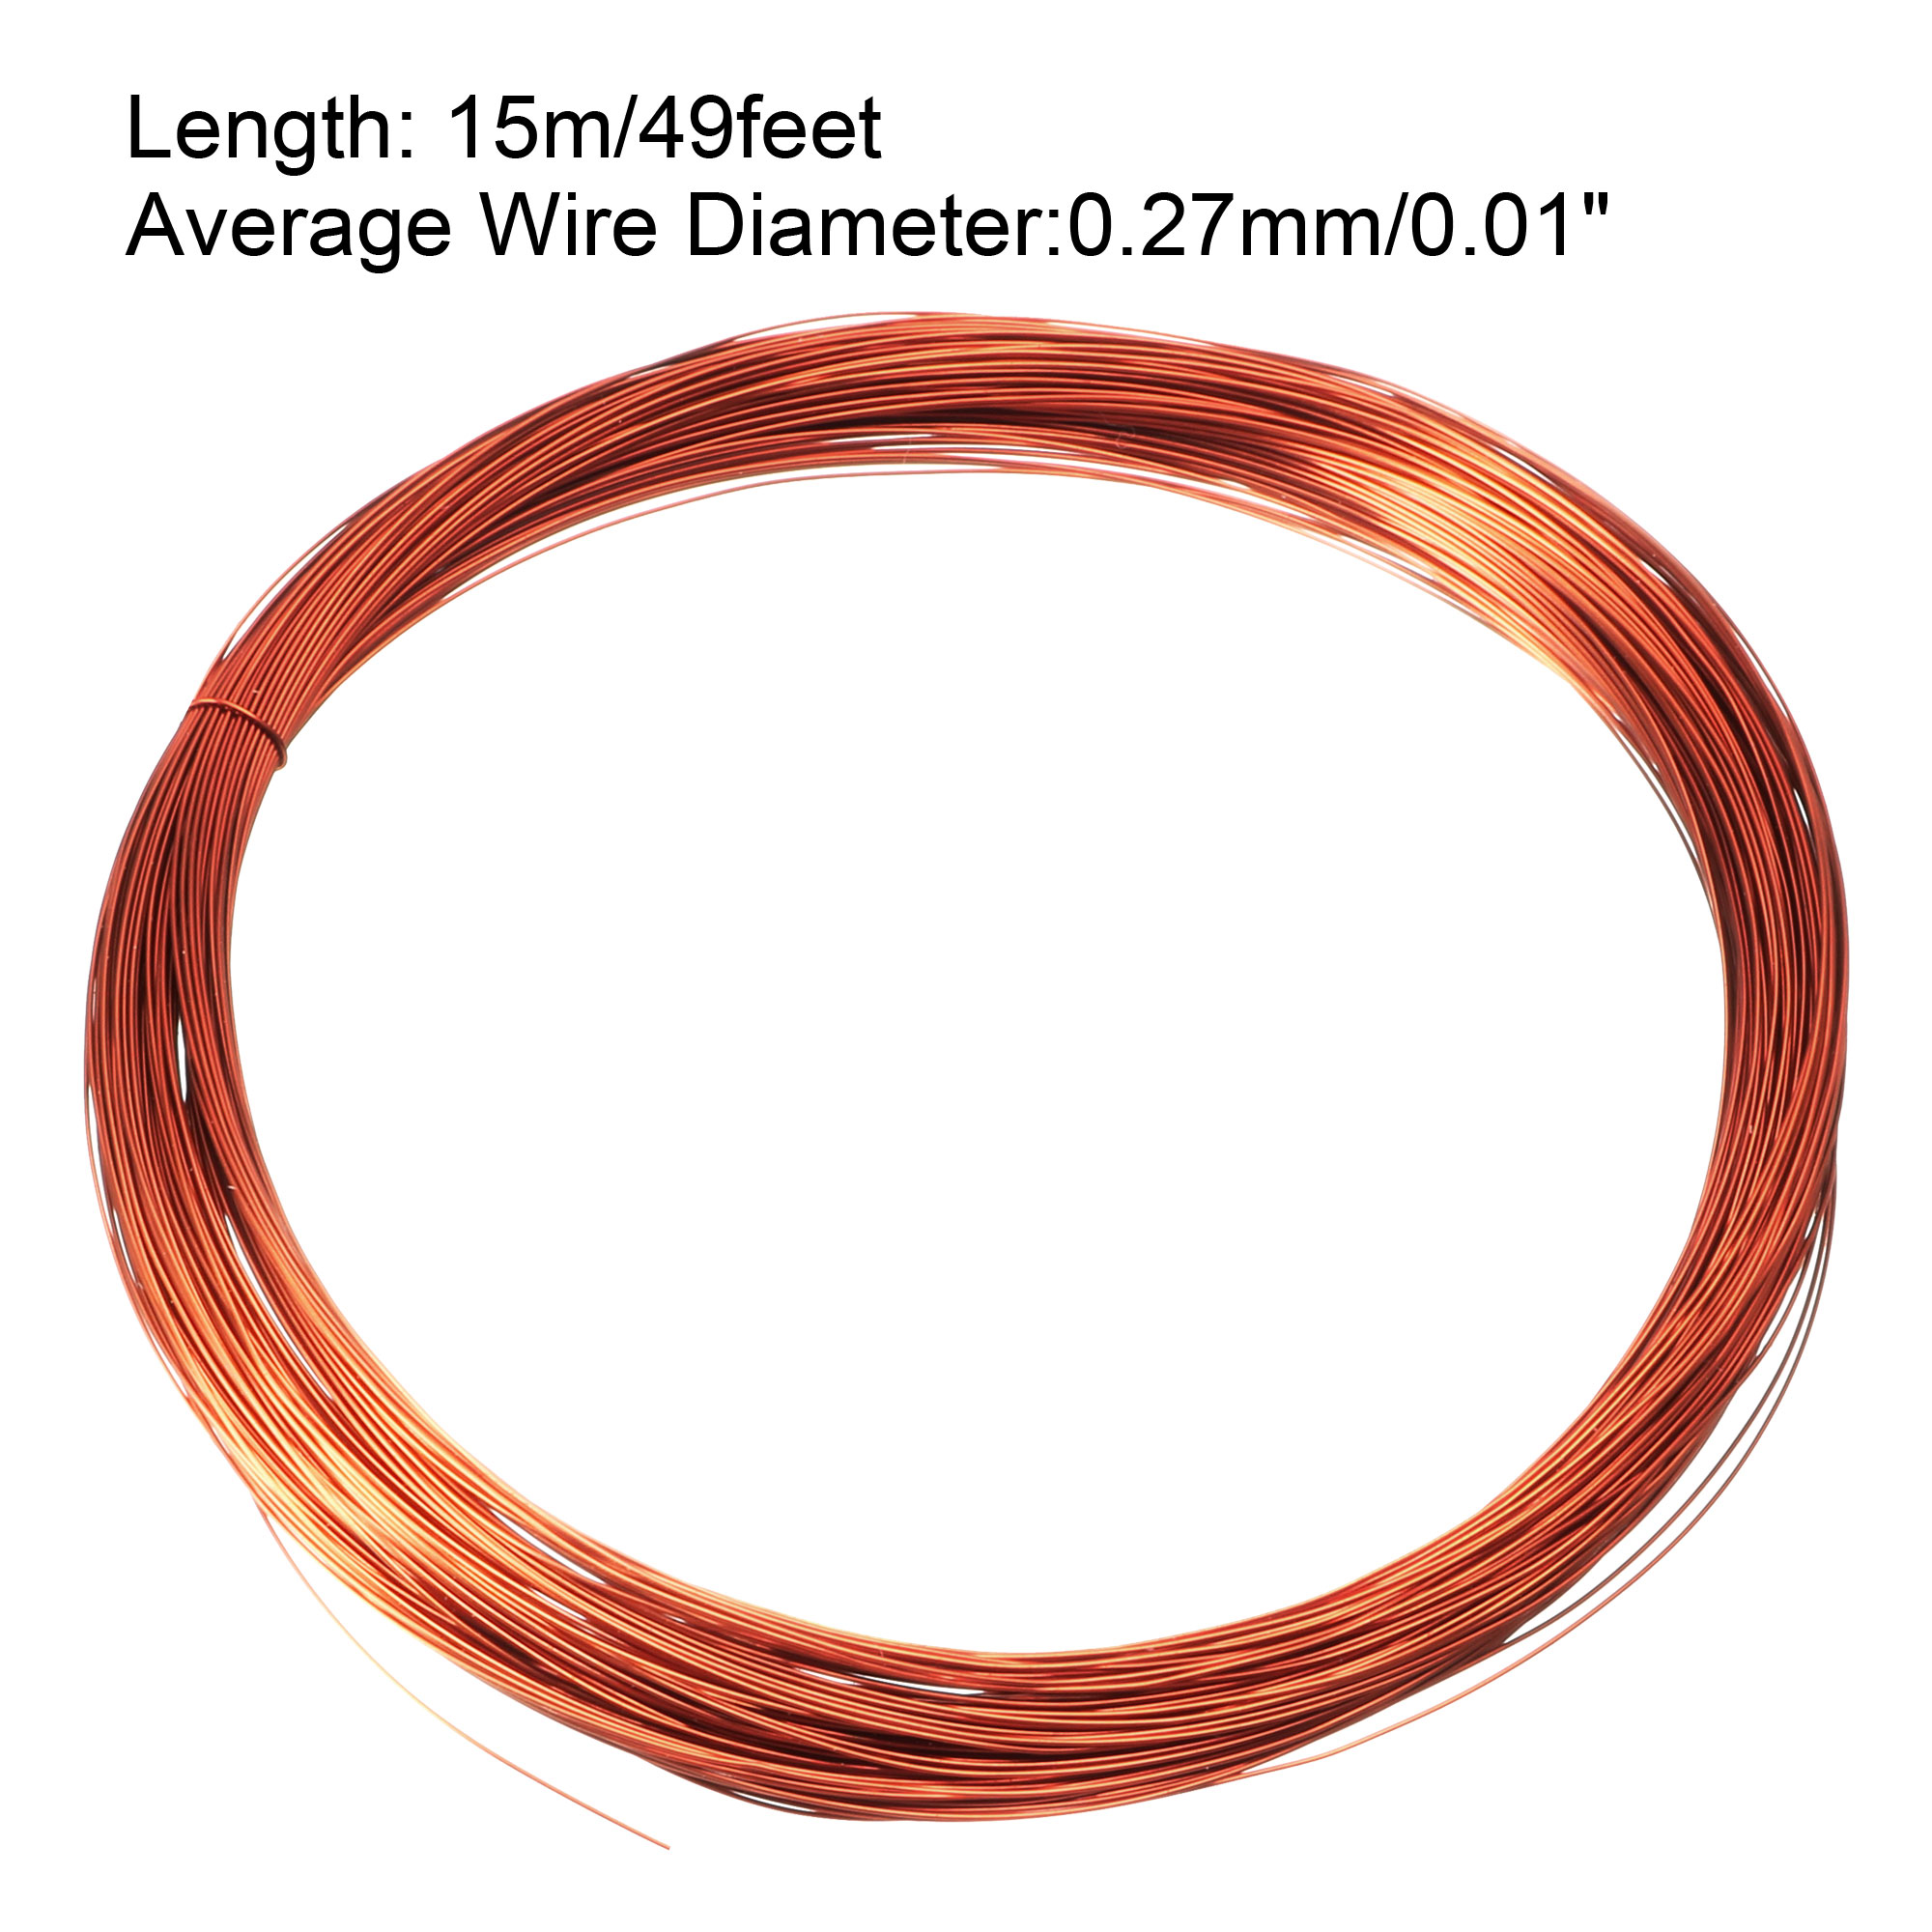 0.27mm Dia Magnet Wire Enameled Copper Wire Winding Coil 49/' Length